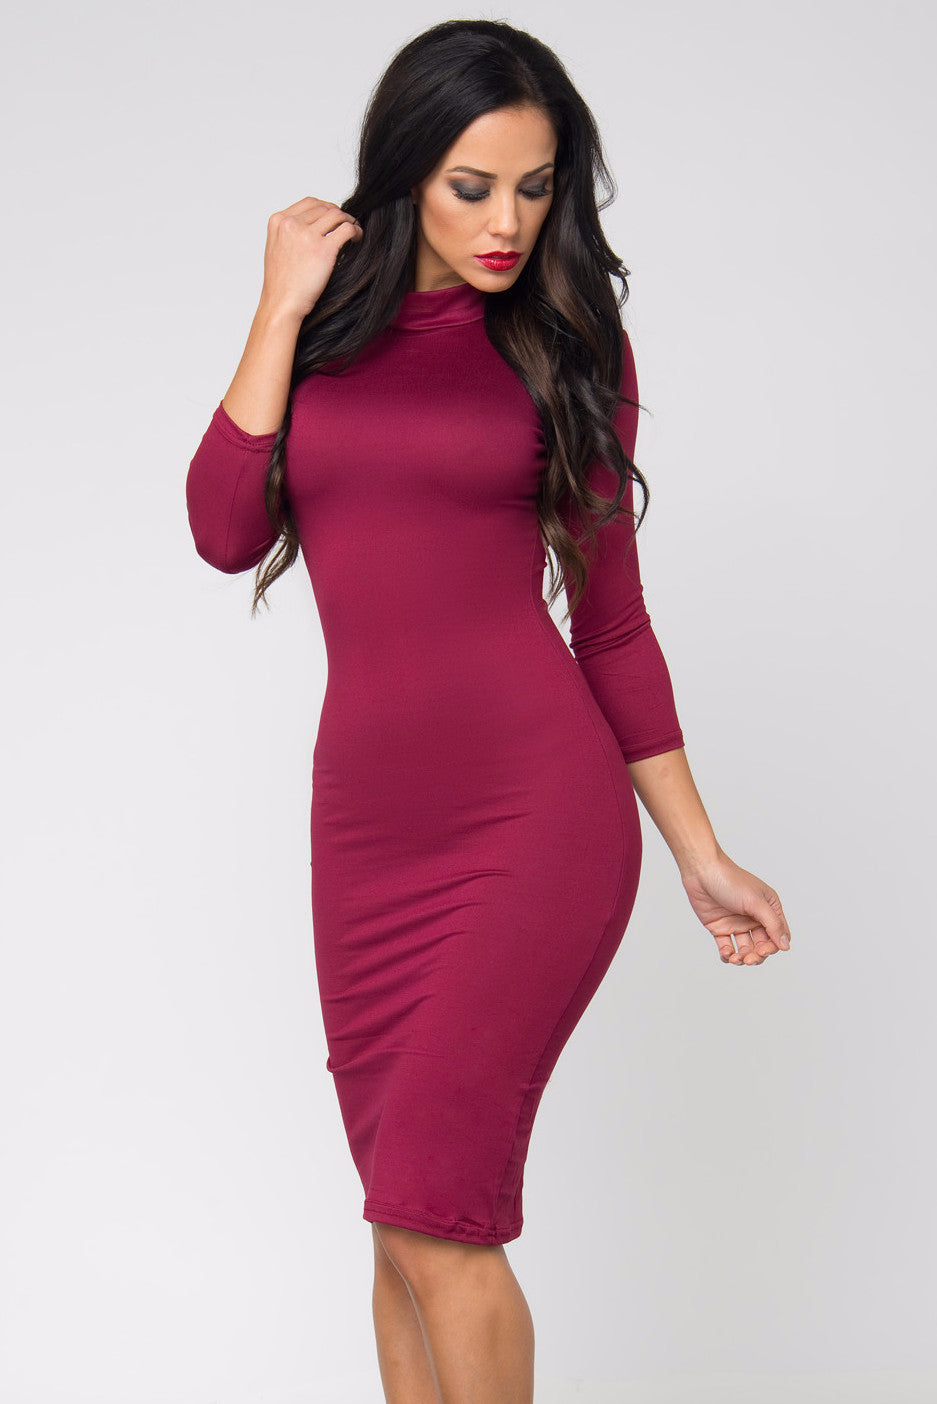 Marsha Burgundy Long Sleeve Dress - Fashion Effect Store  - 1